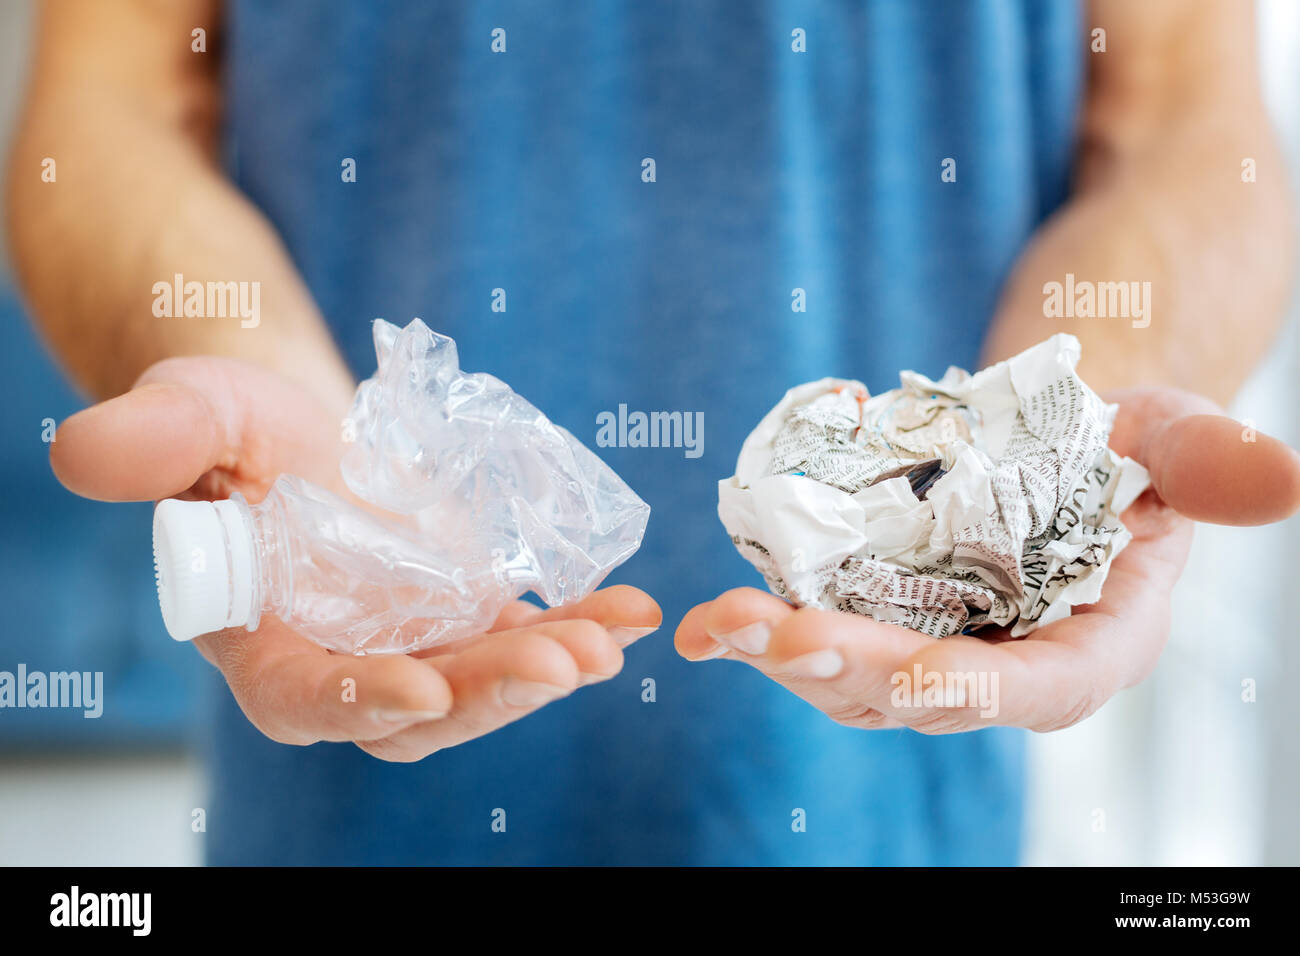 Young man posing with plastic bottle and crumpled newspaper - Stock Image